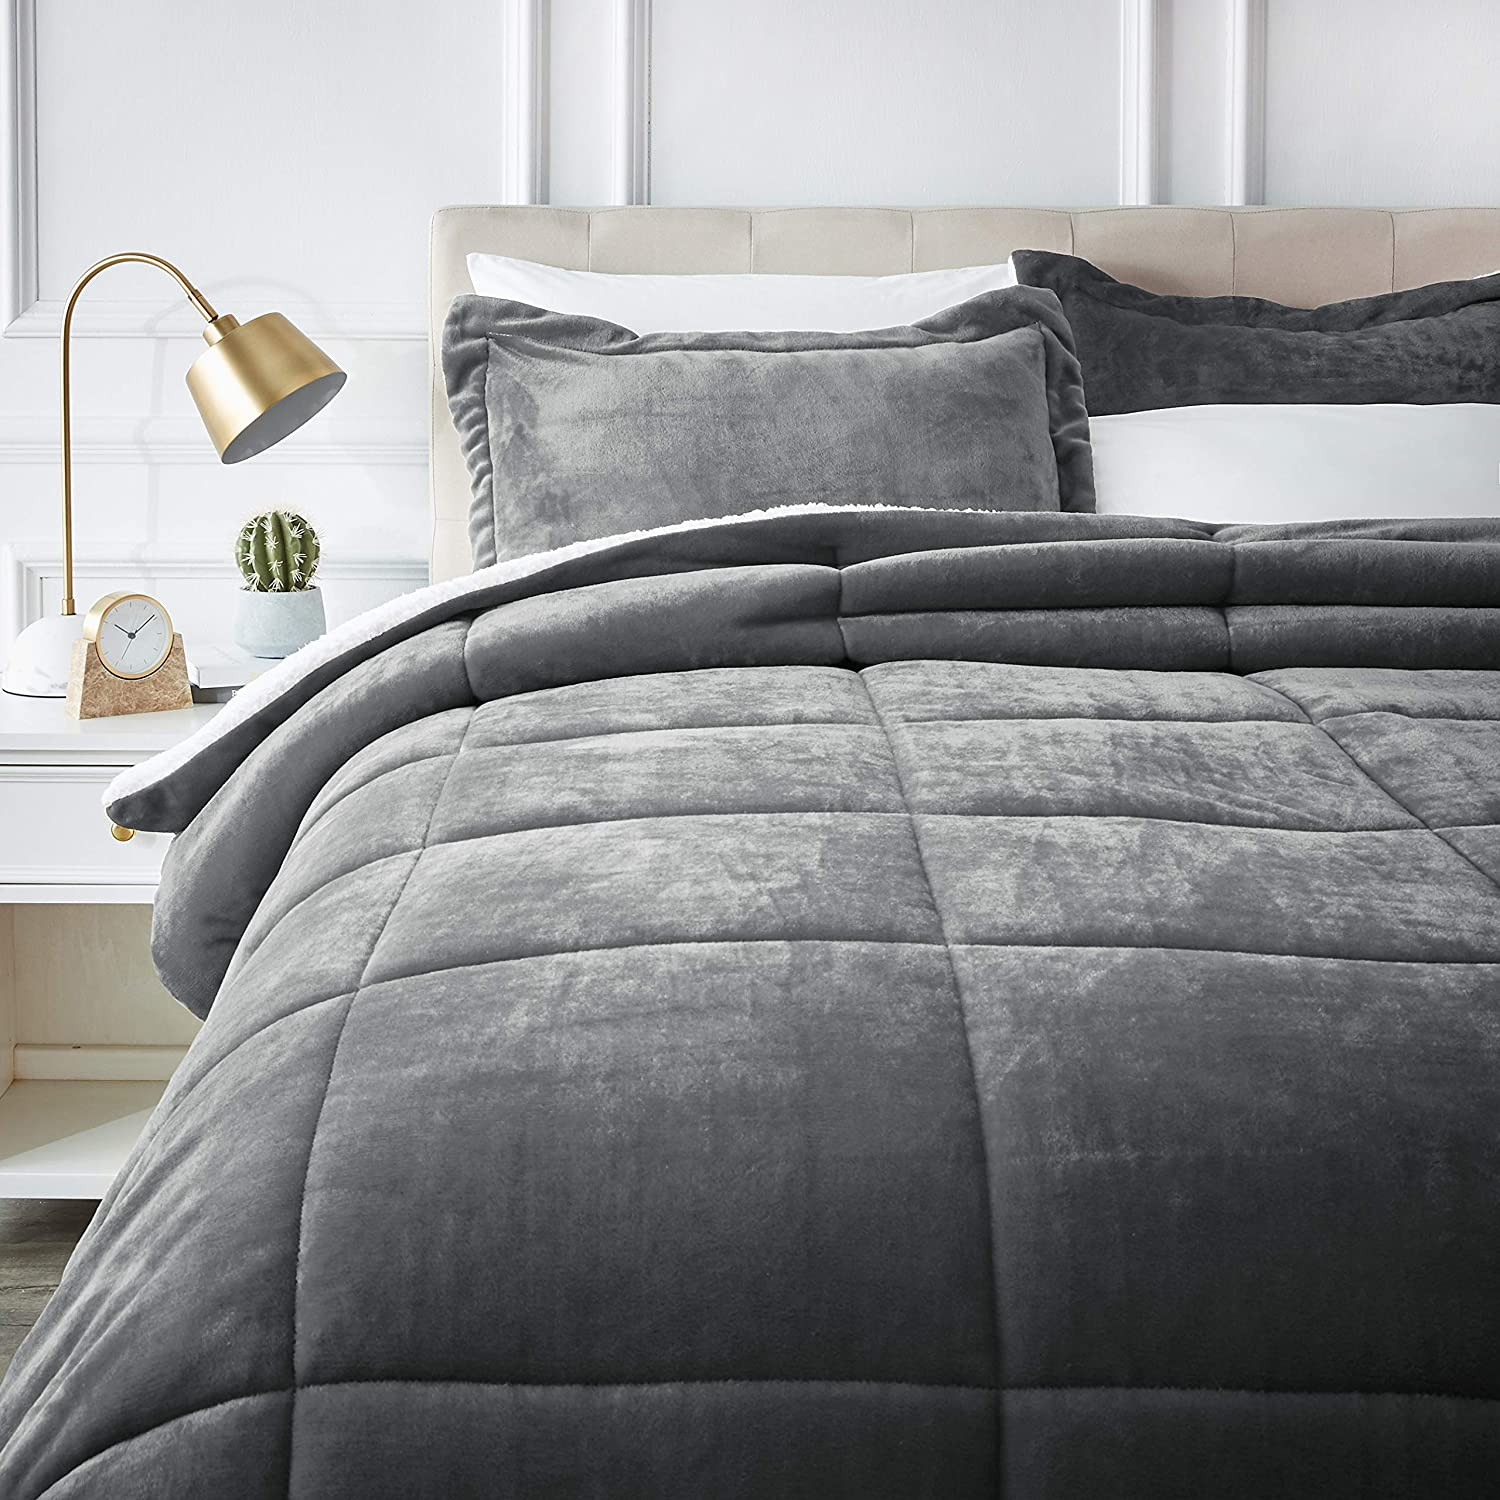 Find Great Bedding Deal